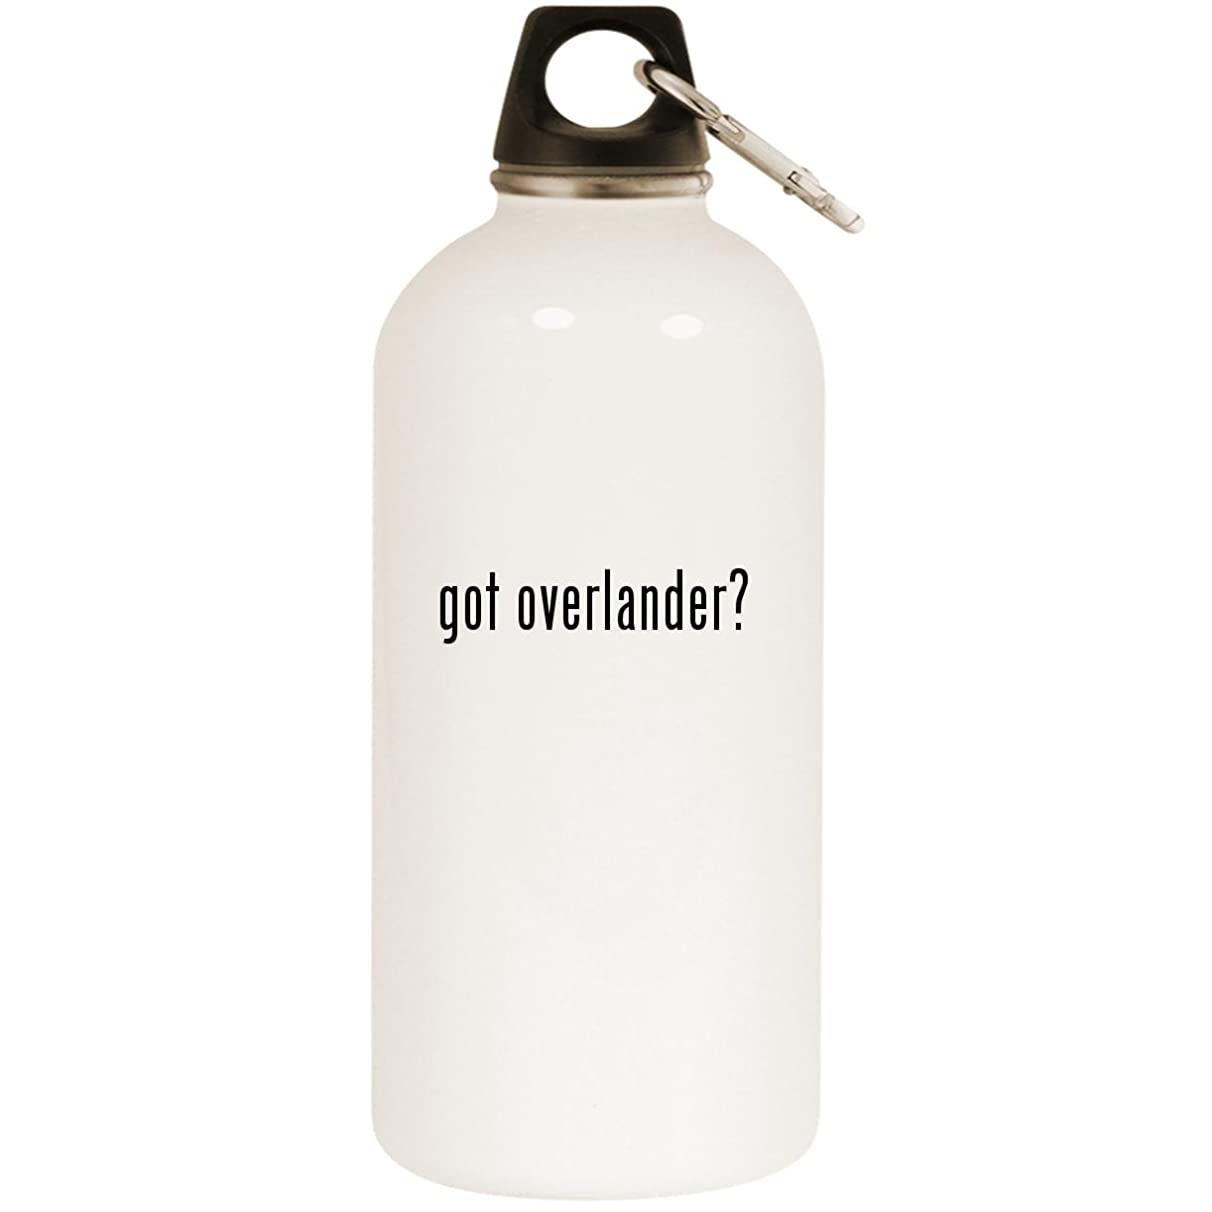 Molandra Products got Overlander? - White 20oz Stainless Steel Water Bottle with Carabiner